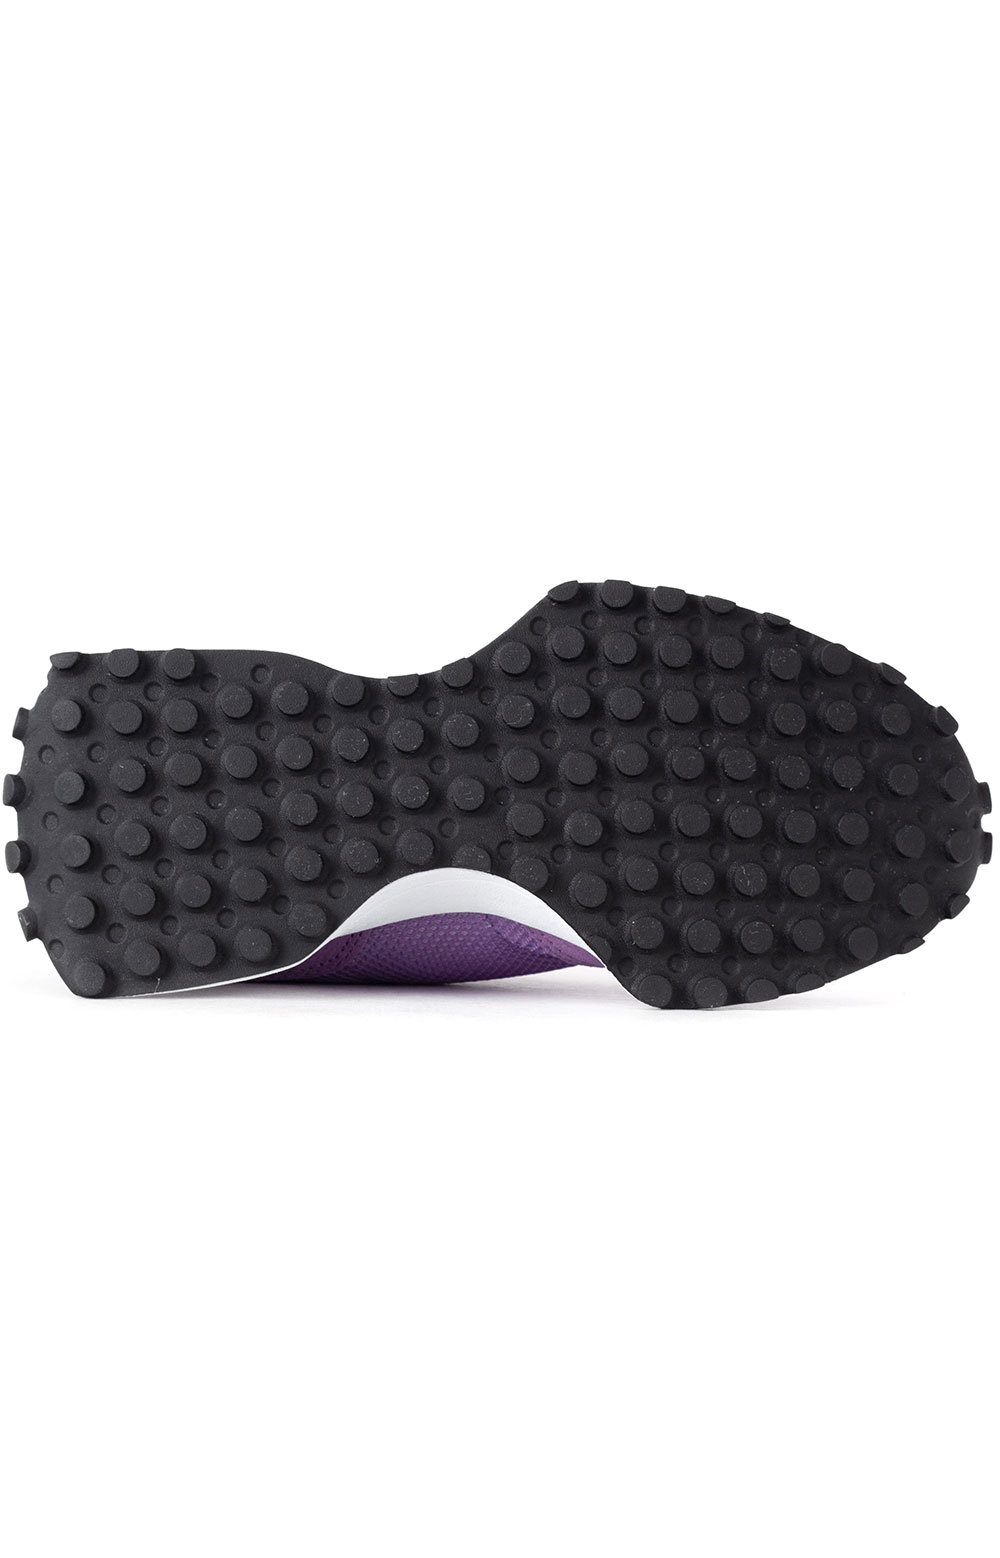 (WS327HE) 327 Shoes - Virtual Violet/Ghost Pepper  6